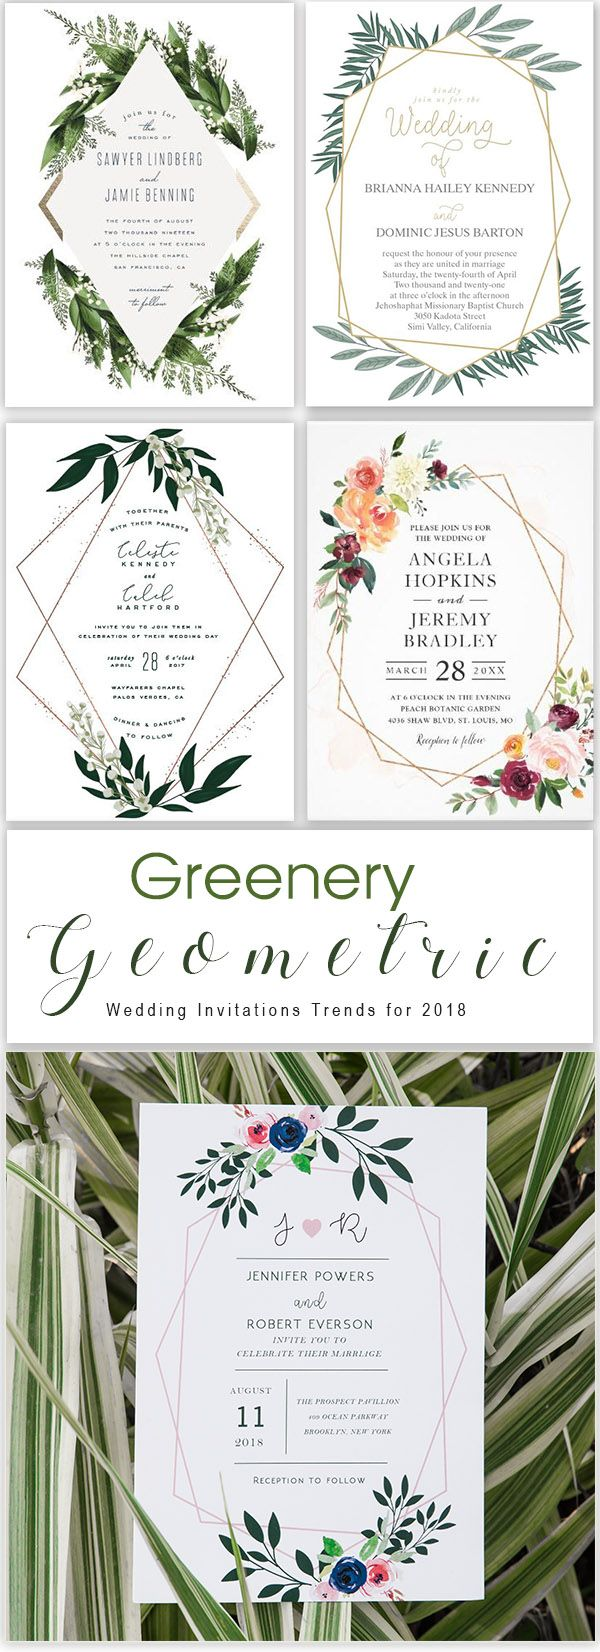 Stylish Wedding Invitations Decorated with Floral Greenery for 2018 Trends